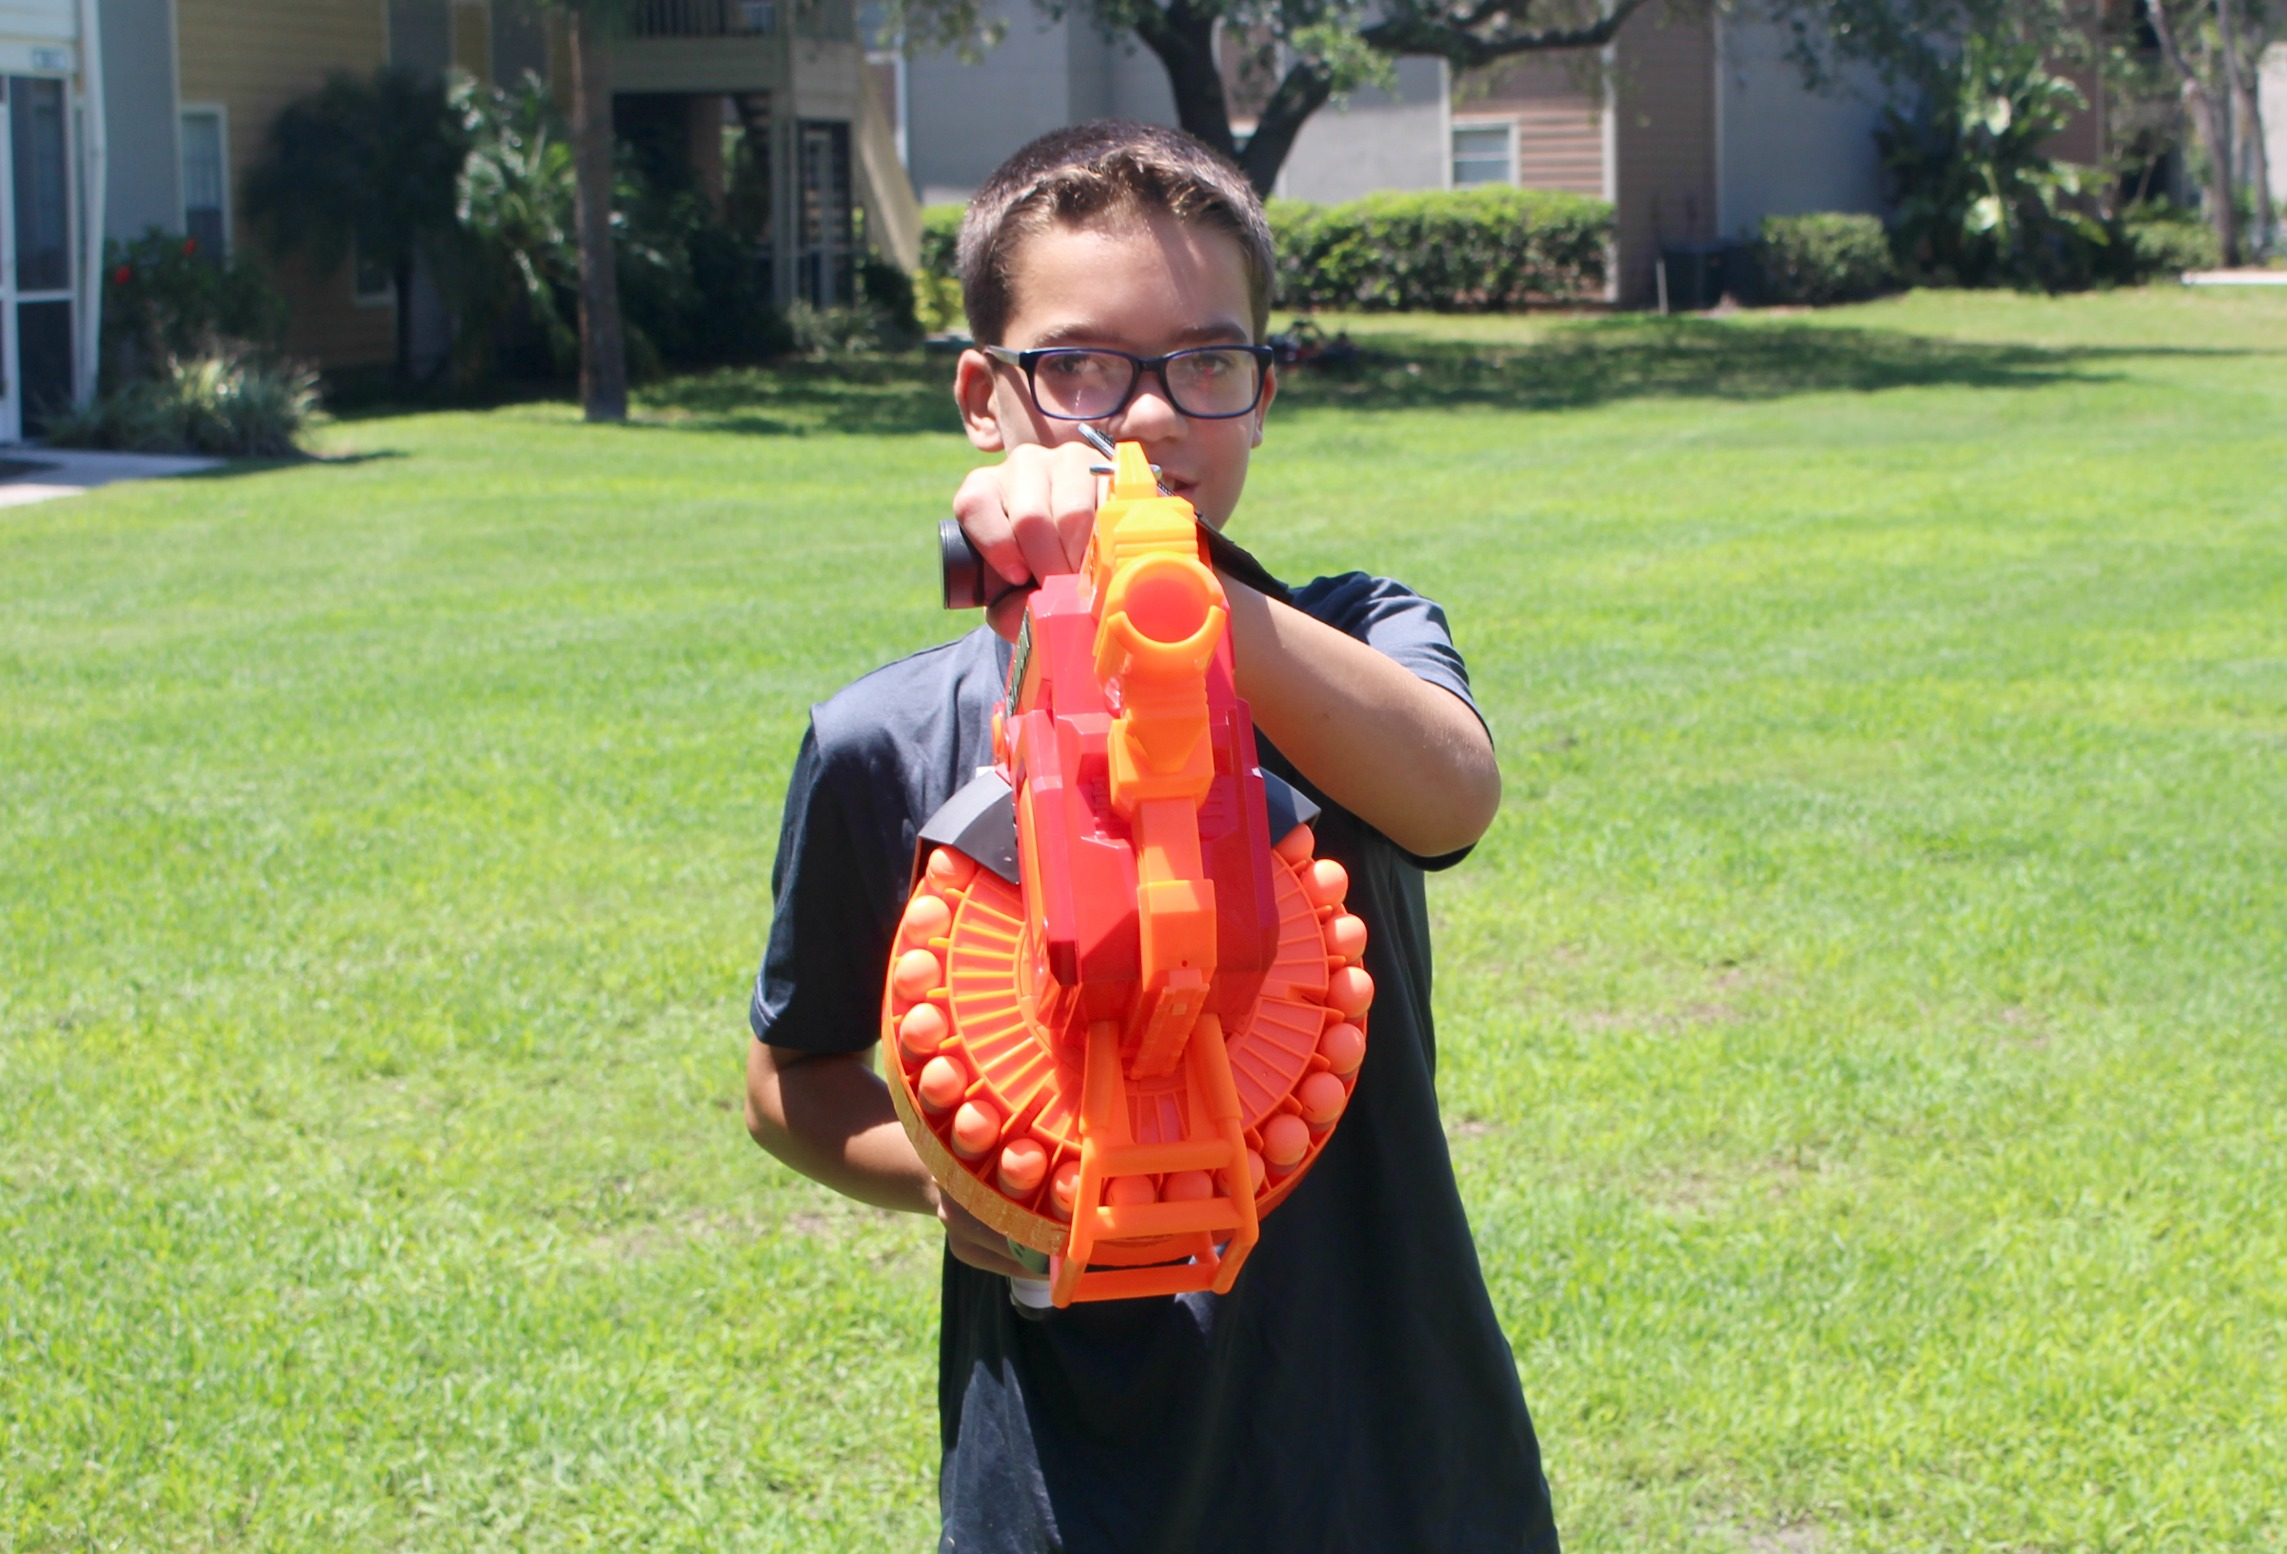 Nerf-Gun-Fight-Mega-Review-Giveaway-fun